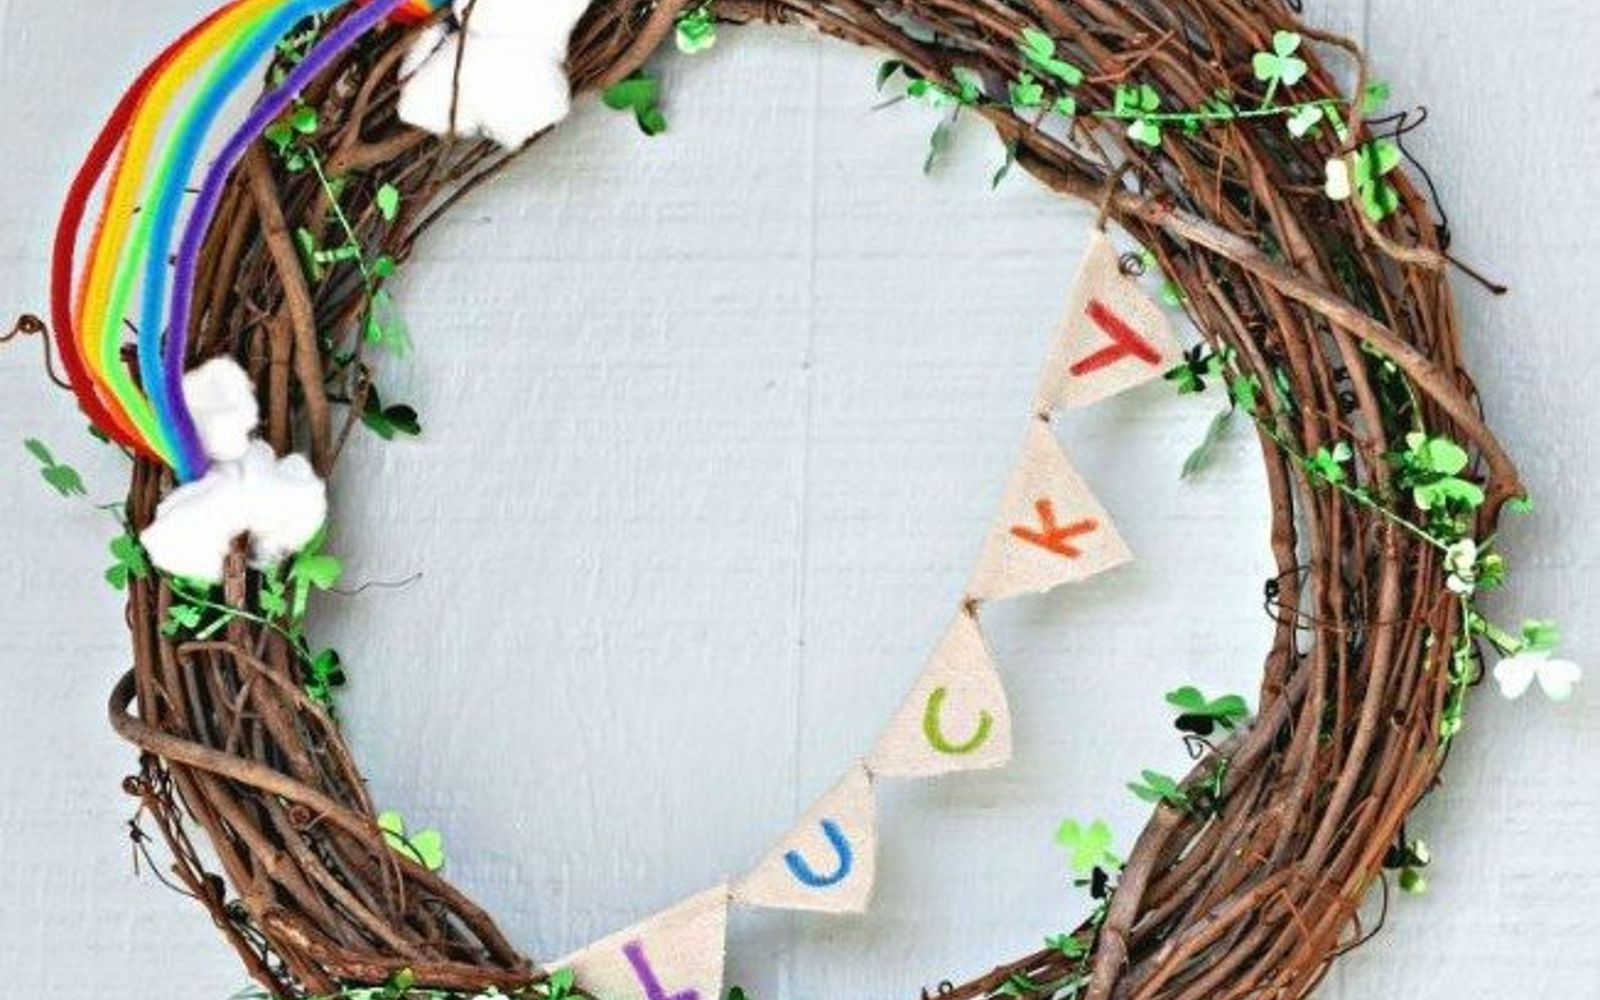 s 31 gorgeous spring wreaths that will make your neighbors smile, crafts, seasonal holiday decor, wreaths, Create a clover filled grapevine wreath